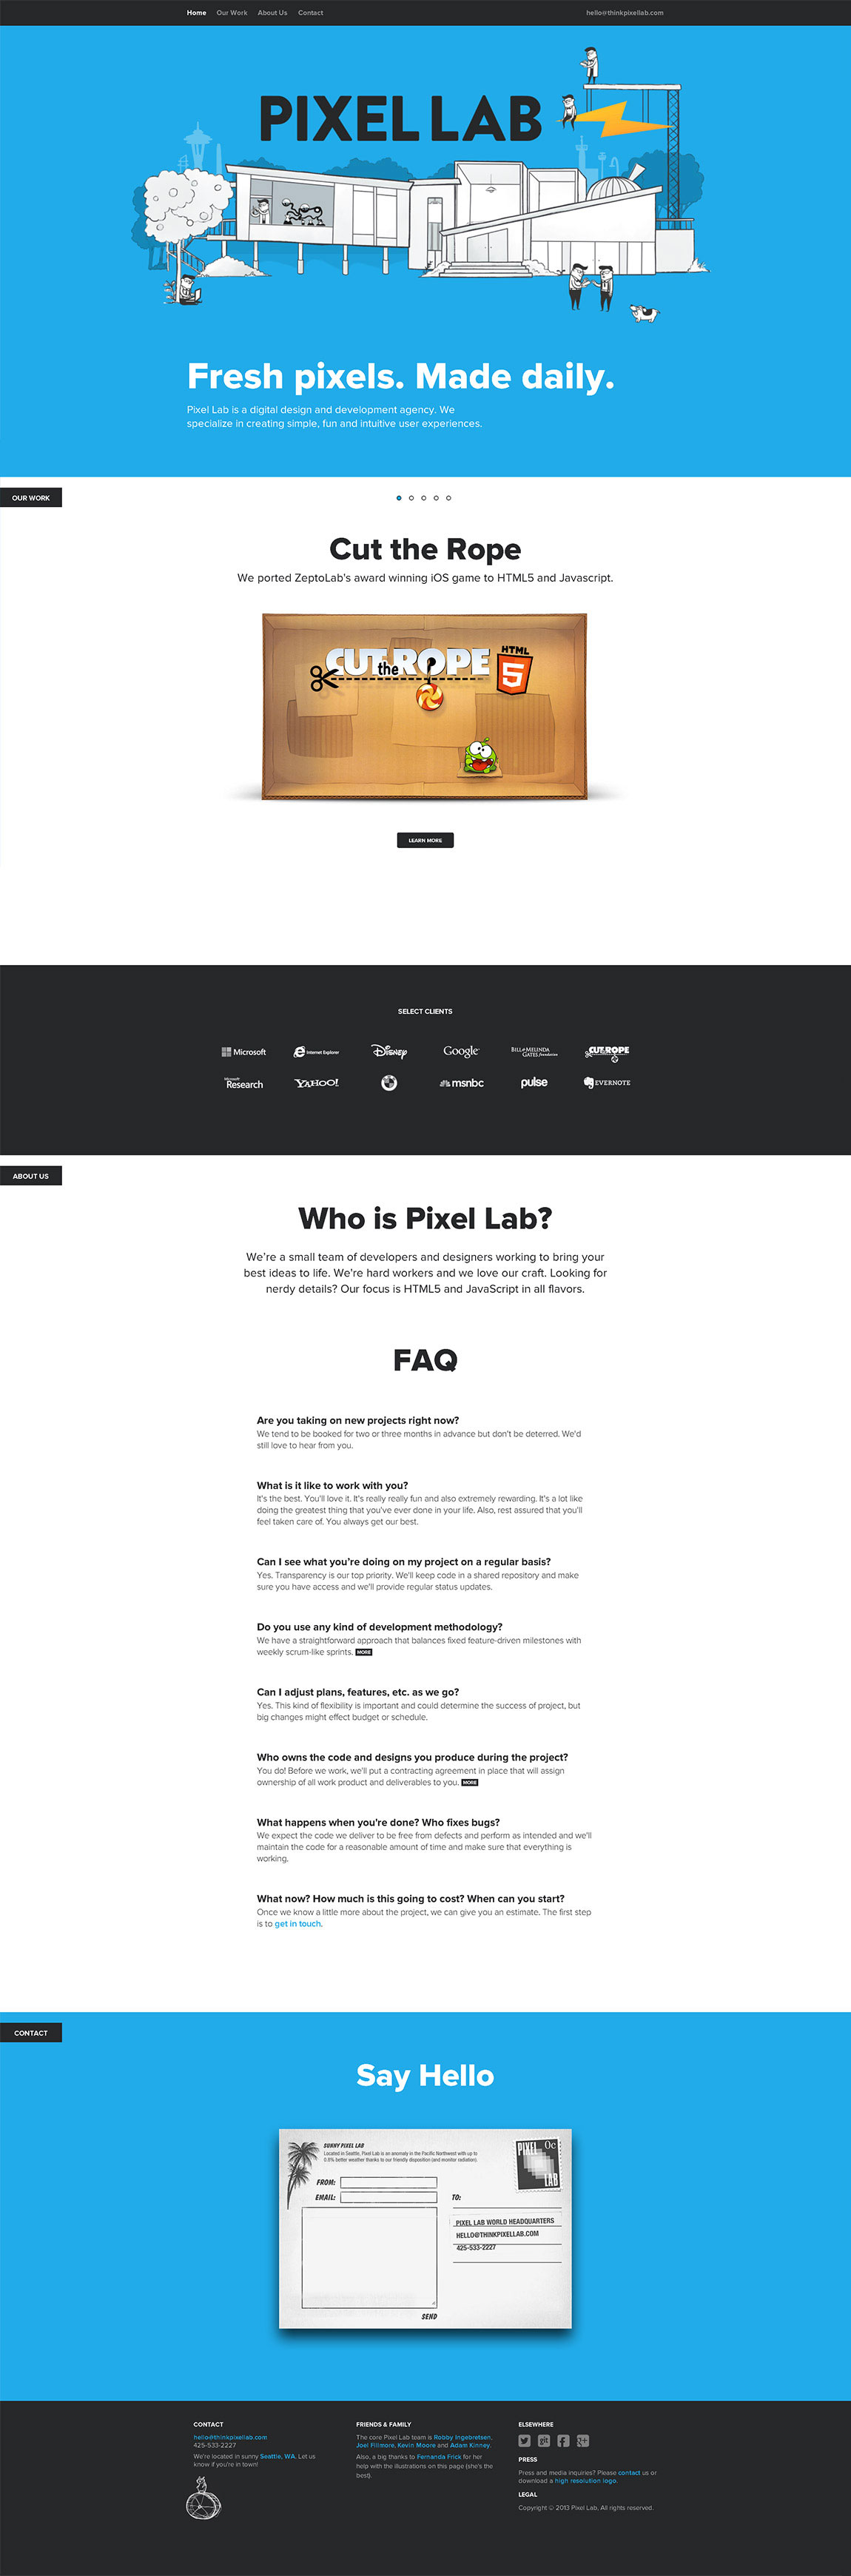 Pixel Lab Website Screenshot